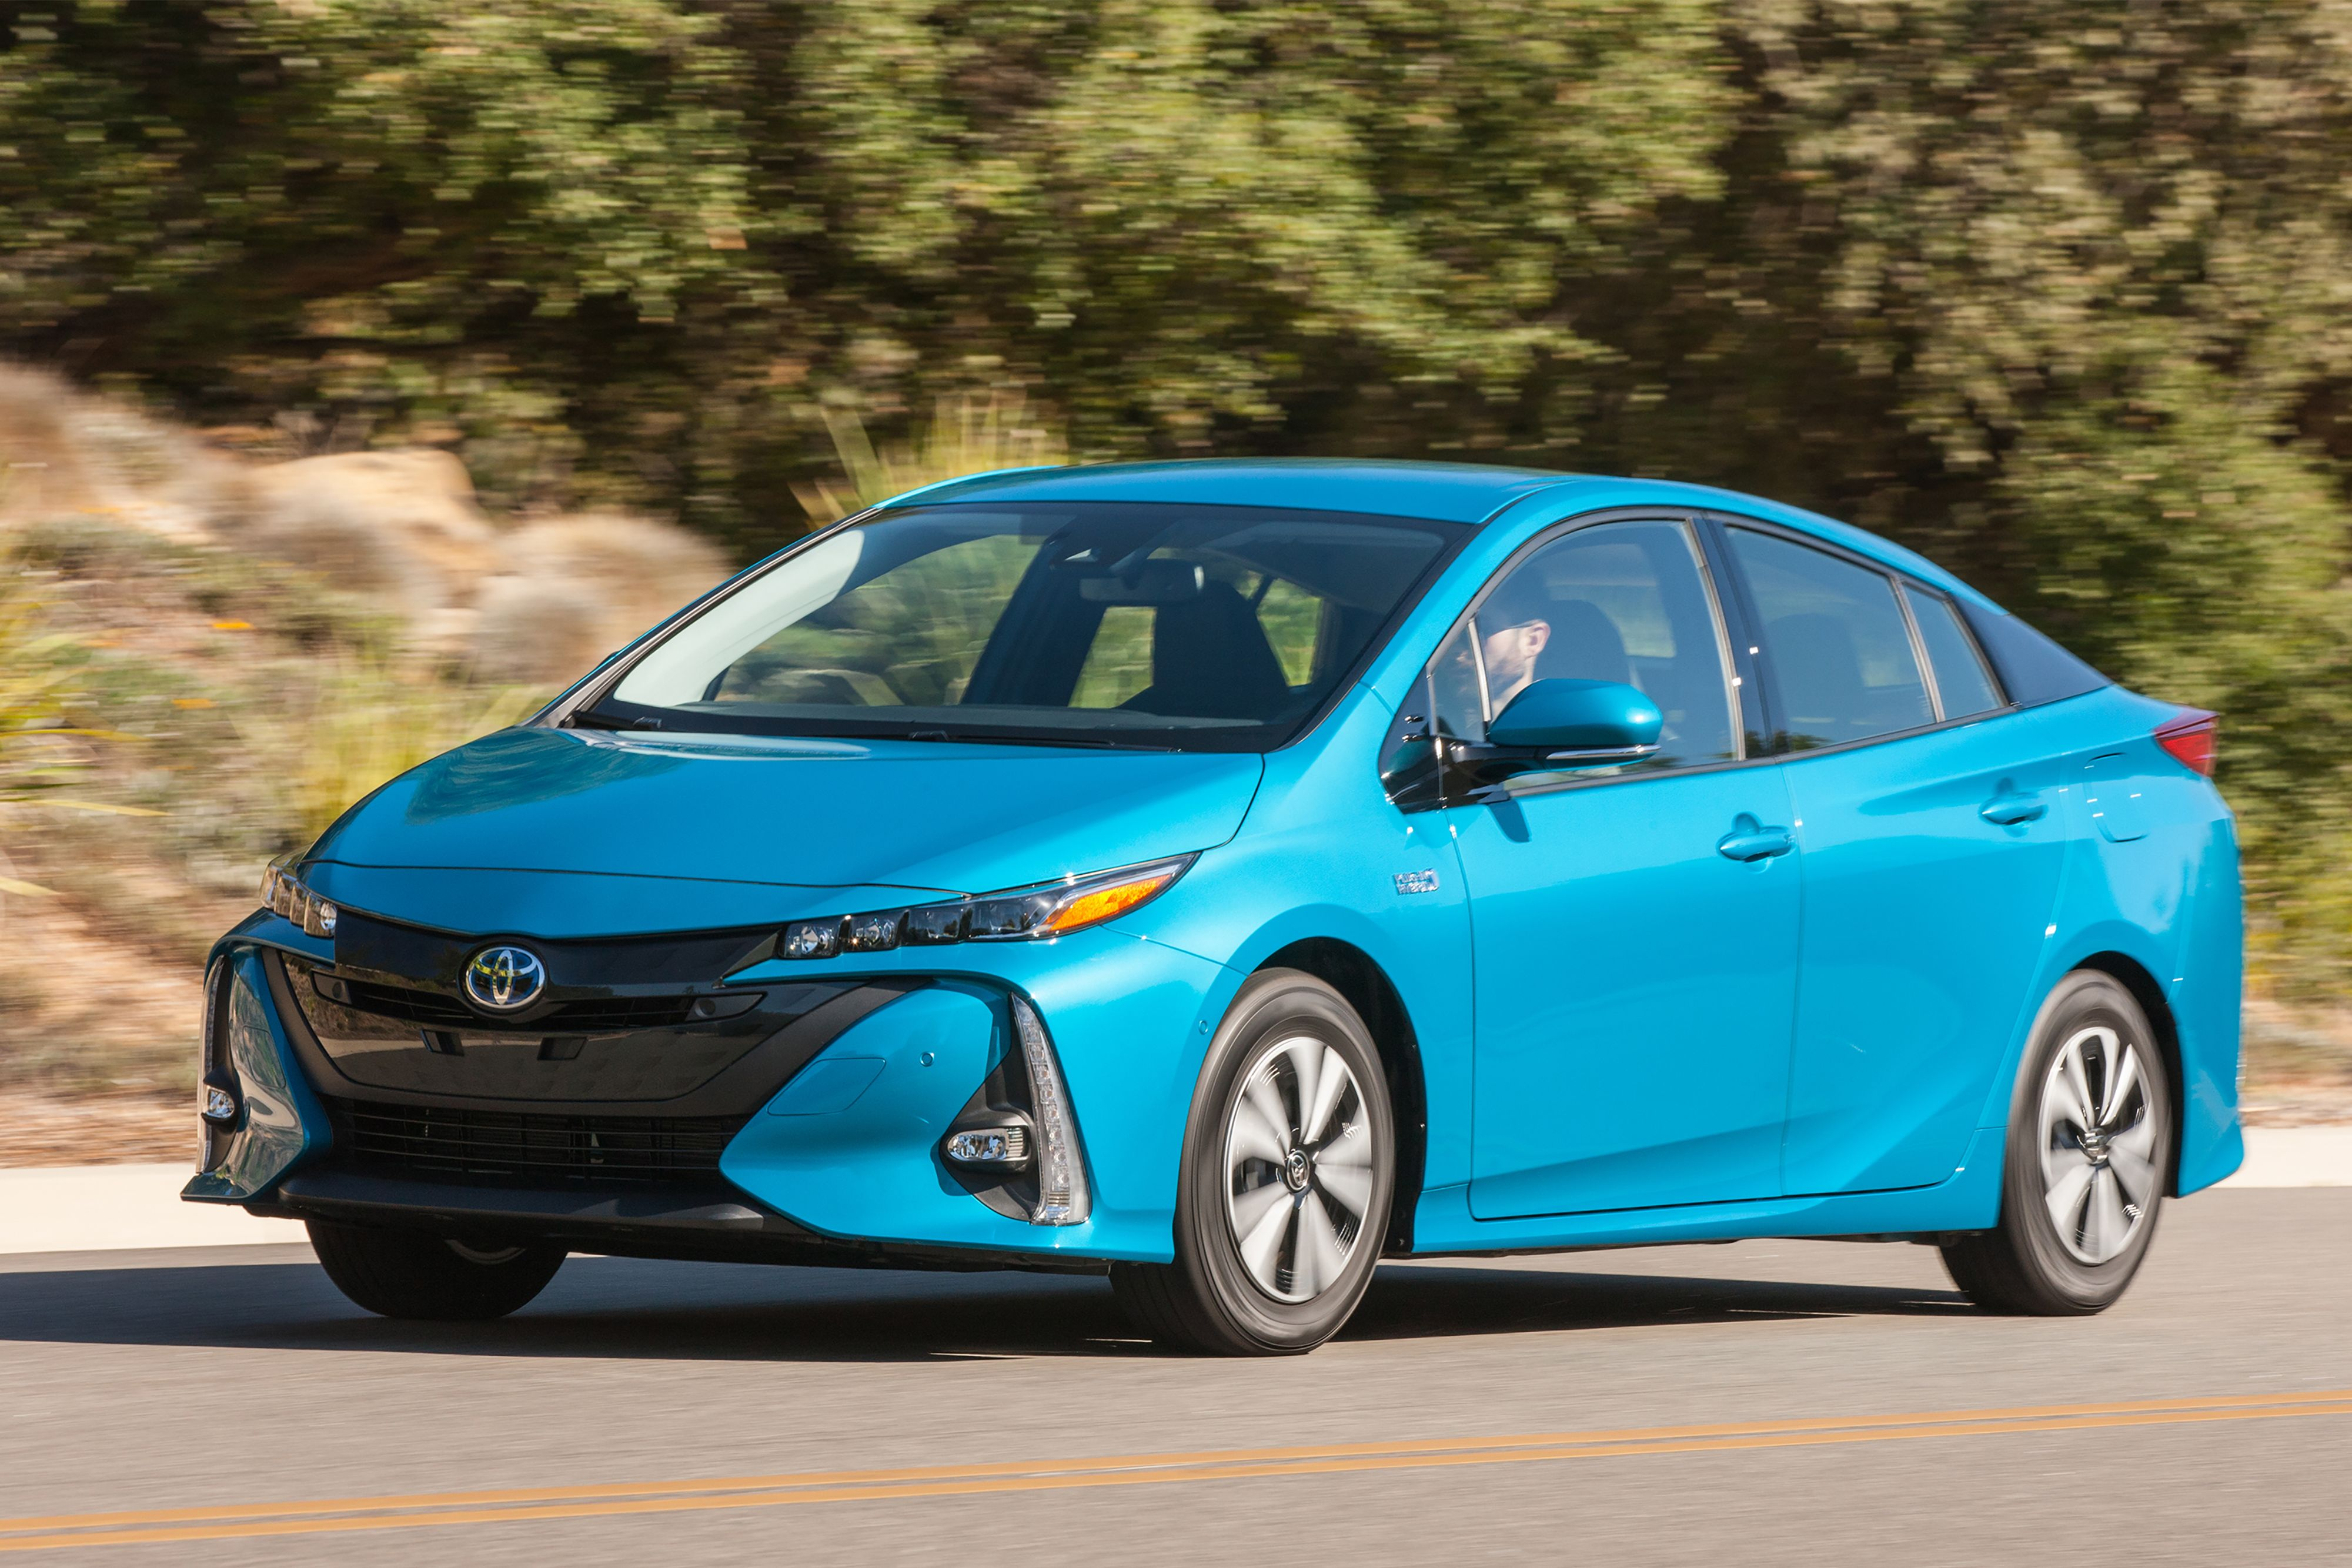 Will The Fifth Seat Make The Toyota Prius The Prime Minister Among